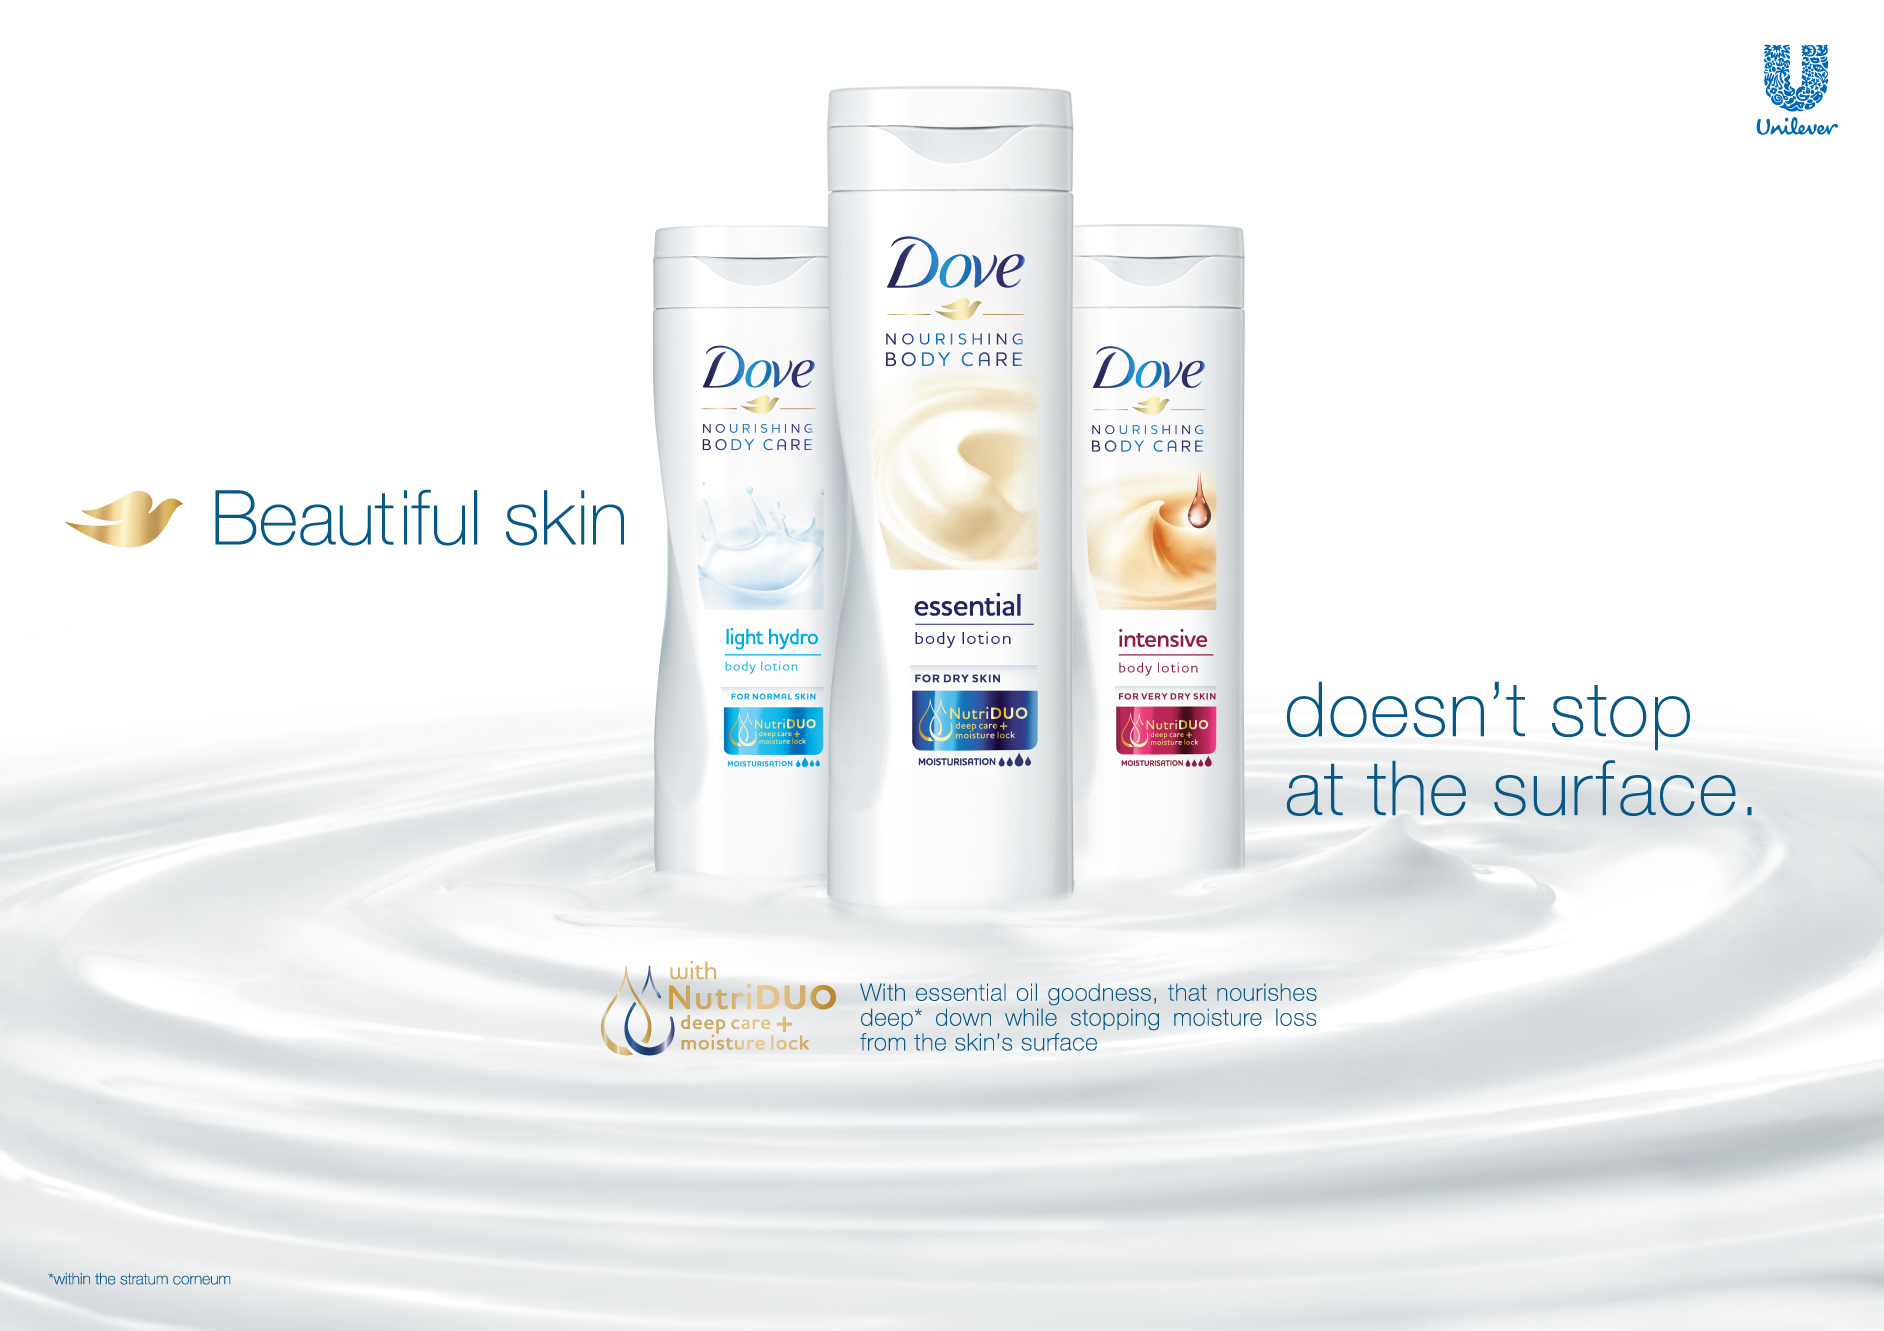 DOVE BODY LOTION LAUNCH